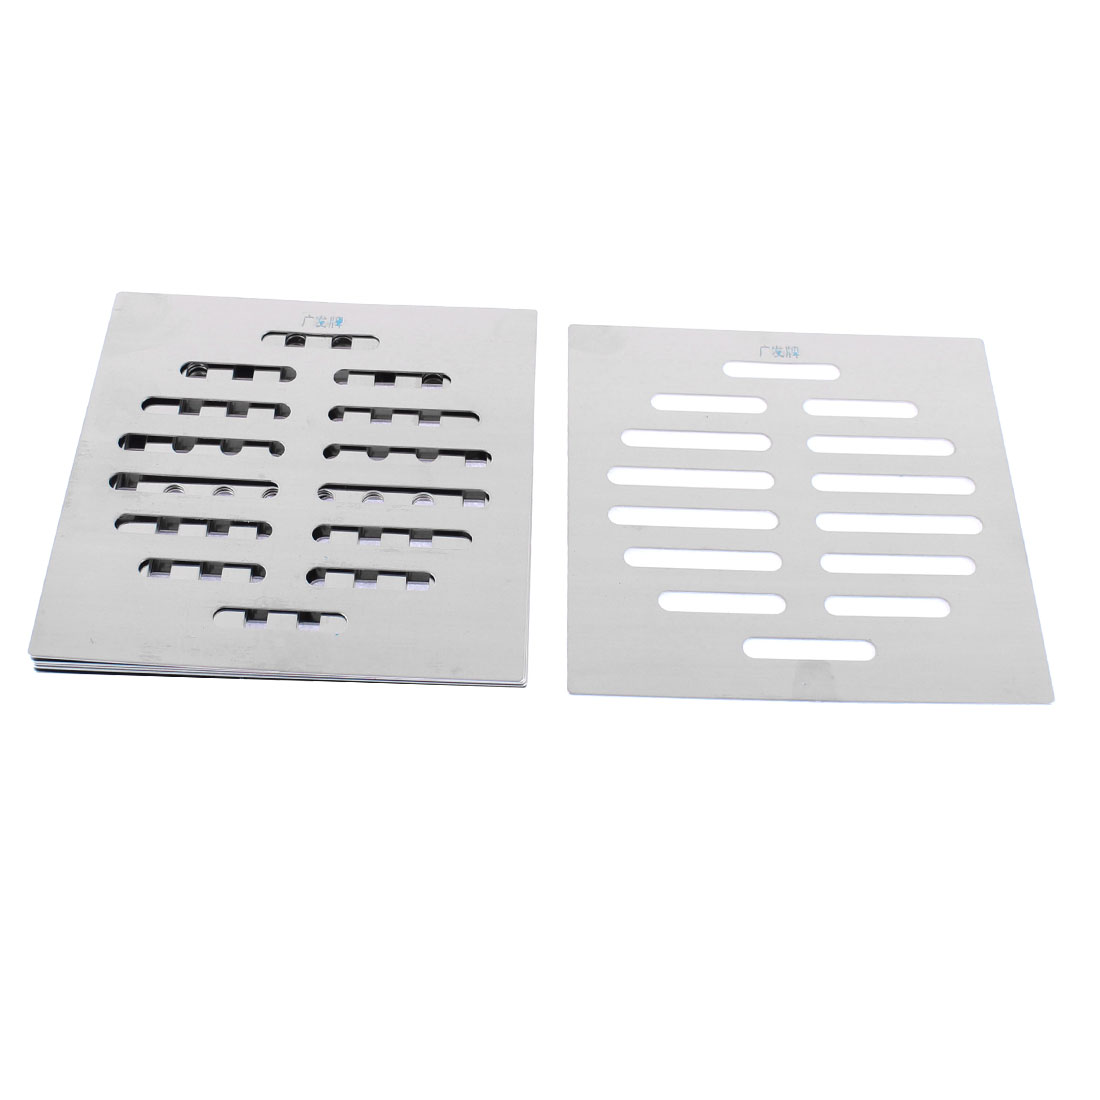 Kitchen Bathroom Square Floor Drain Drainer Cover 12.5cm x 12.5cm 8Pcs